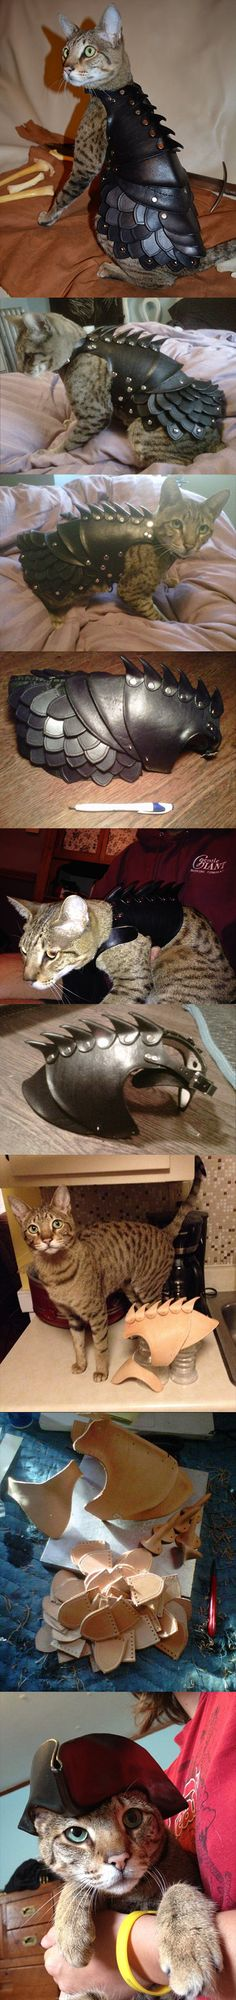 "You gotta love crazy cat people, if only for the entertainment value. You're looking at a handmade $500 Cat Battle Armor by an internet who goes by the name of ""schnabuble"".                                                                                                                                                                                 More"